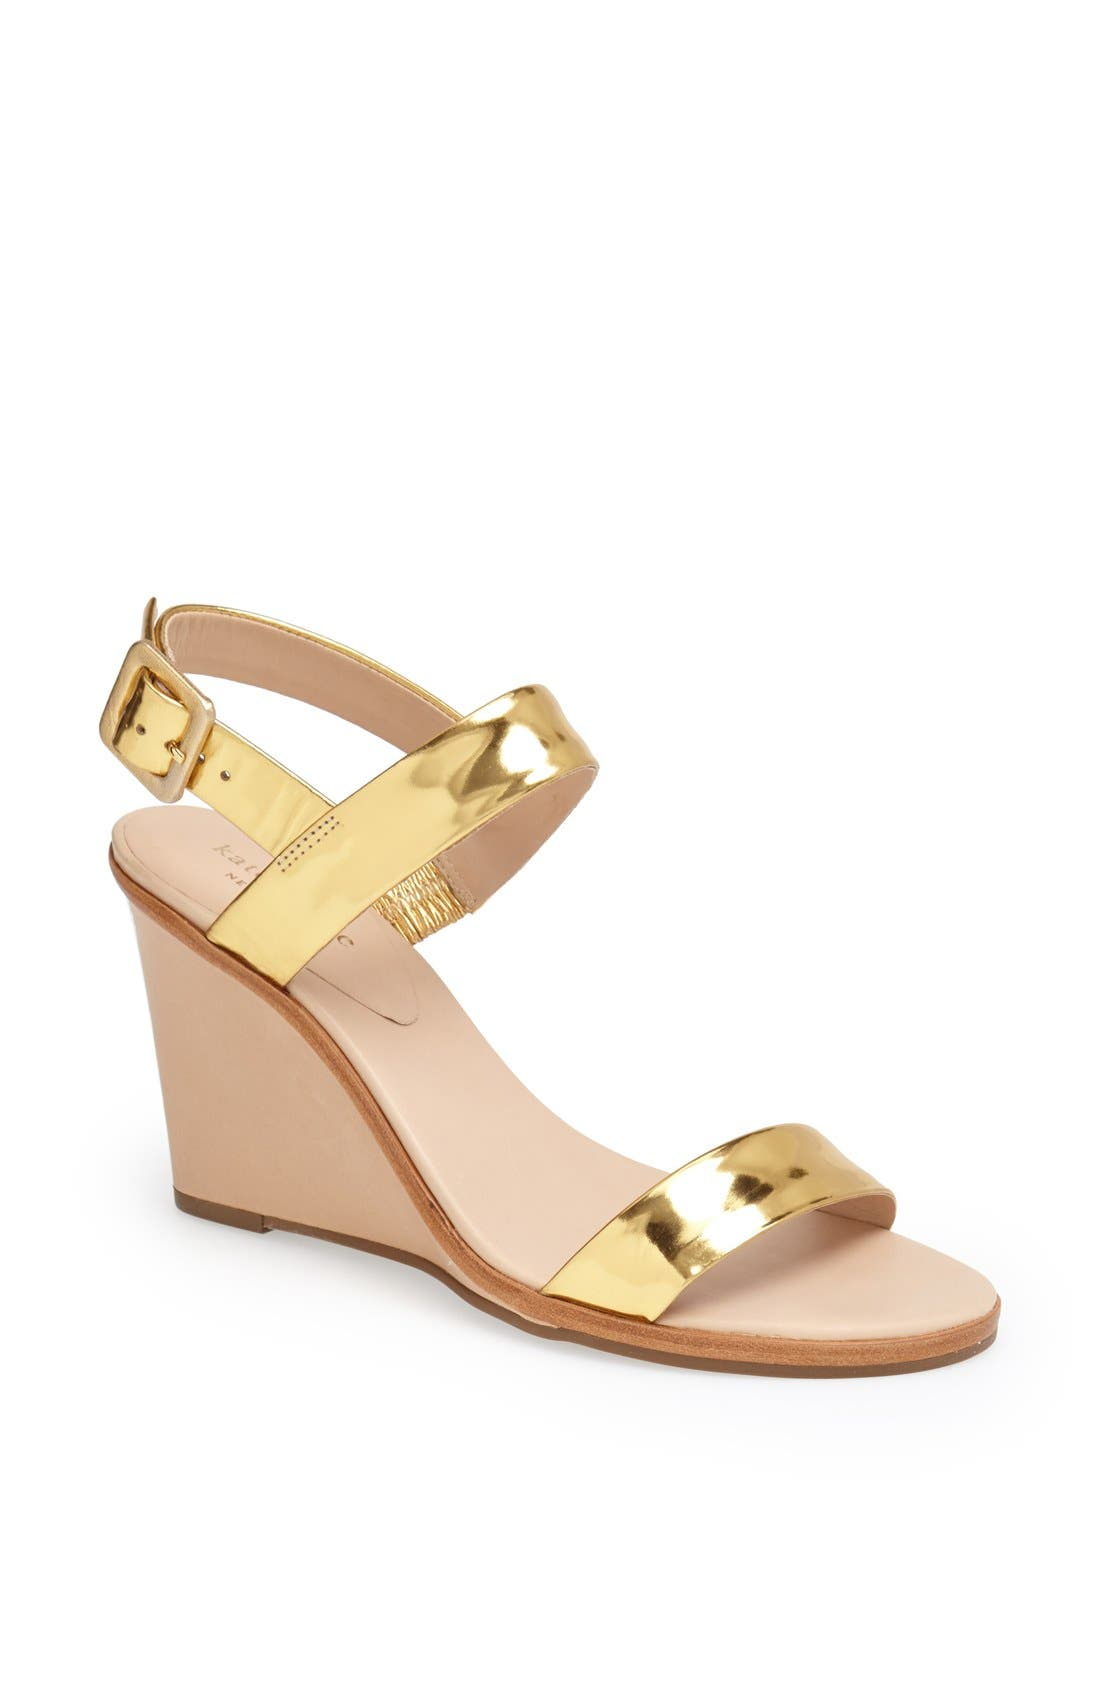 Alternate Image 1 Selected - kate spade new york 'nice' sandal (Women)